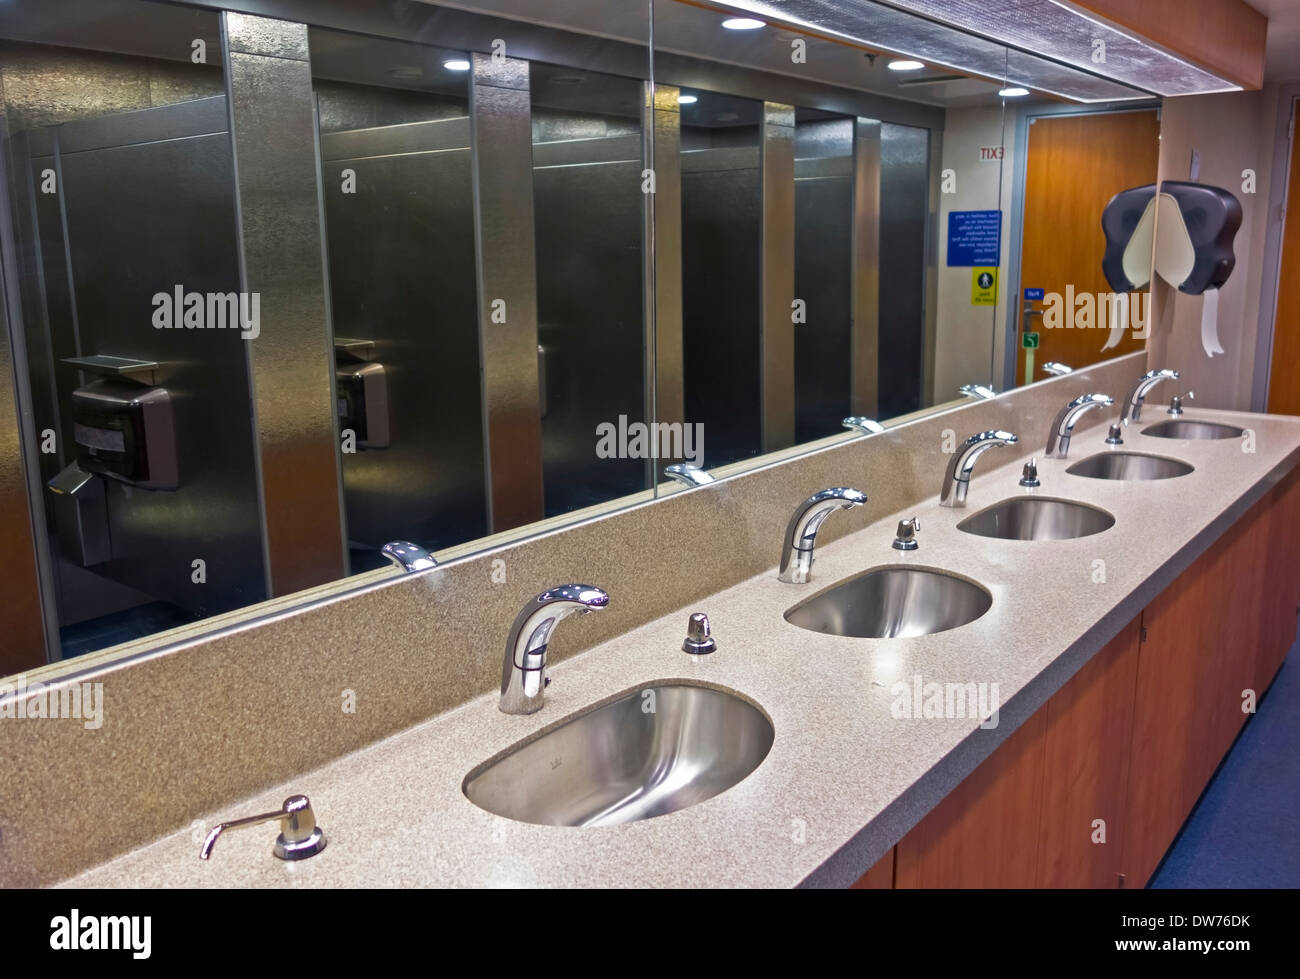 Row of sinks and metal stalls reflecting in the mirror in public washroom on BC ferry boat.  Automated taps for cleanliness. - Stock Image